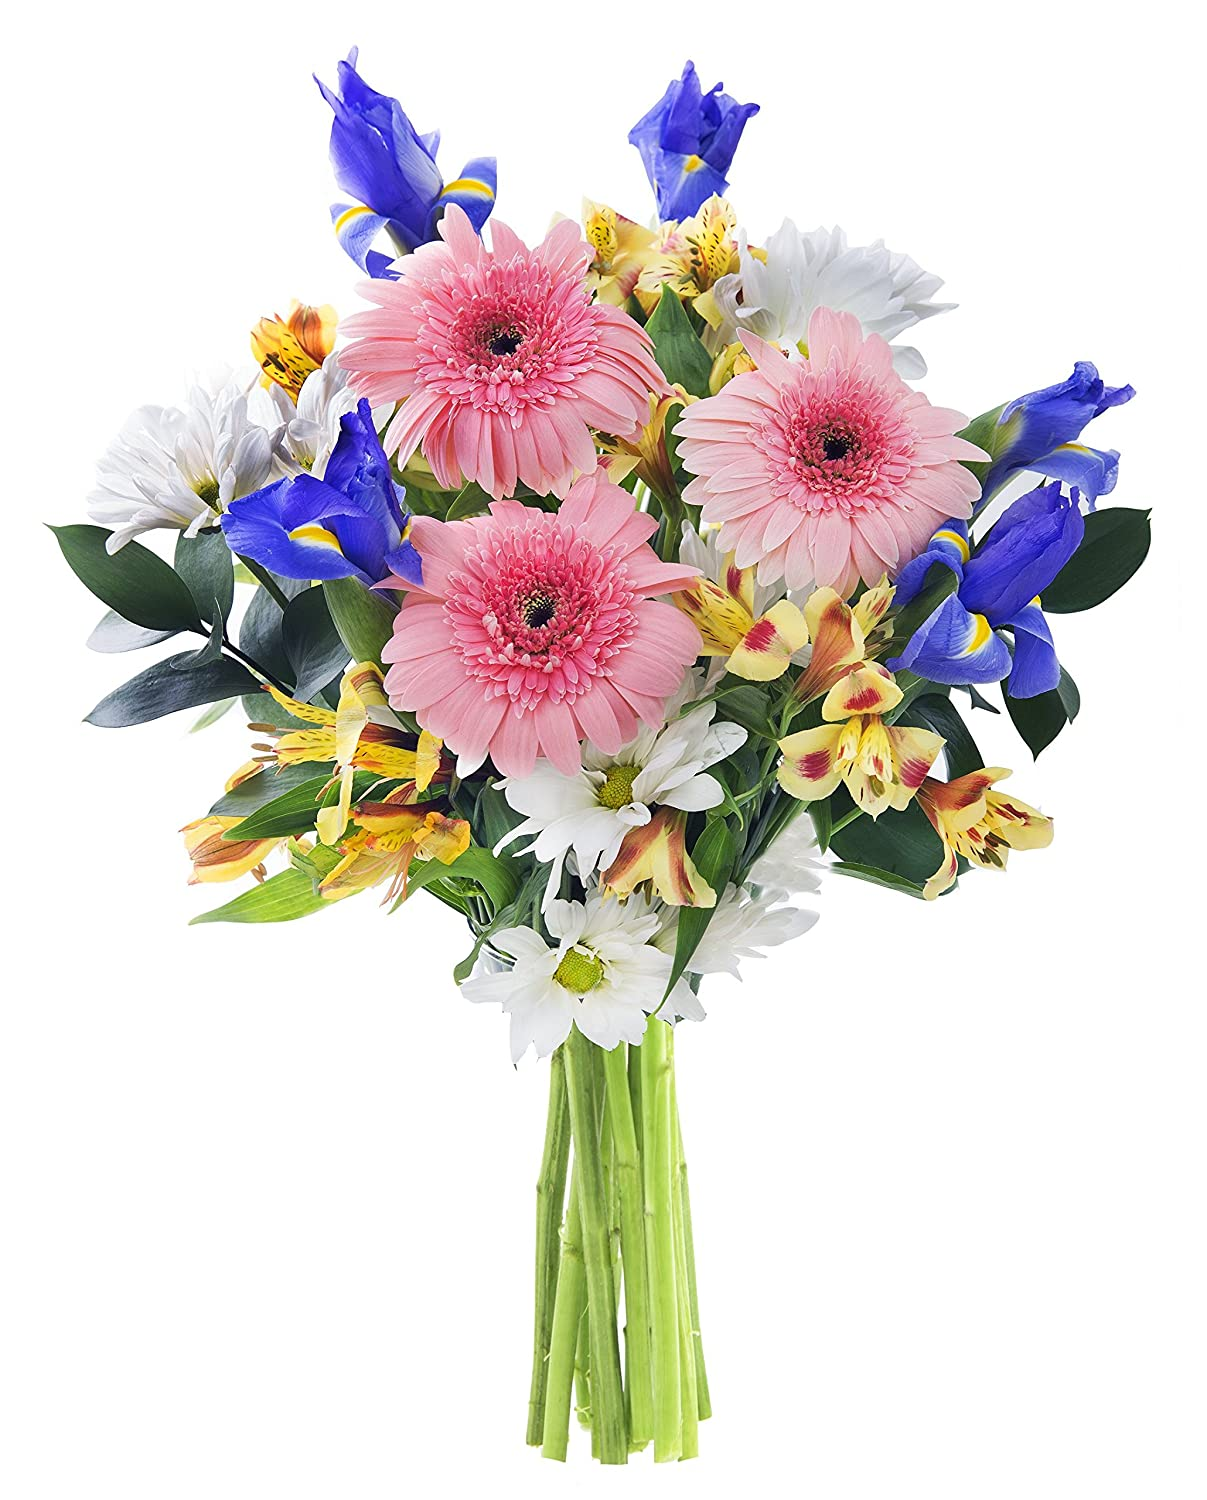 Amazon Happy Birthday Wishes Bouquet 10 Yellow Alstroemeria 3 Pink Gerbera Daisies 5 Blue Irises White Daisy Poms And Lush Greens With Vase